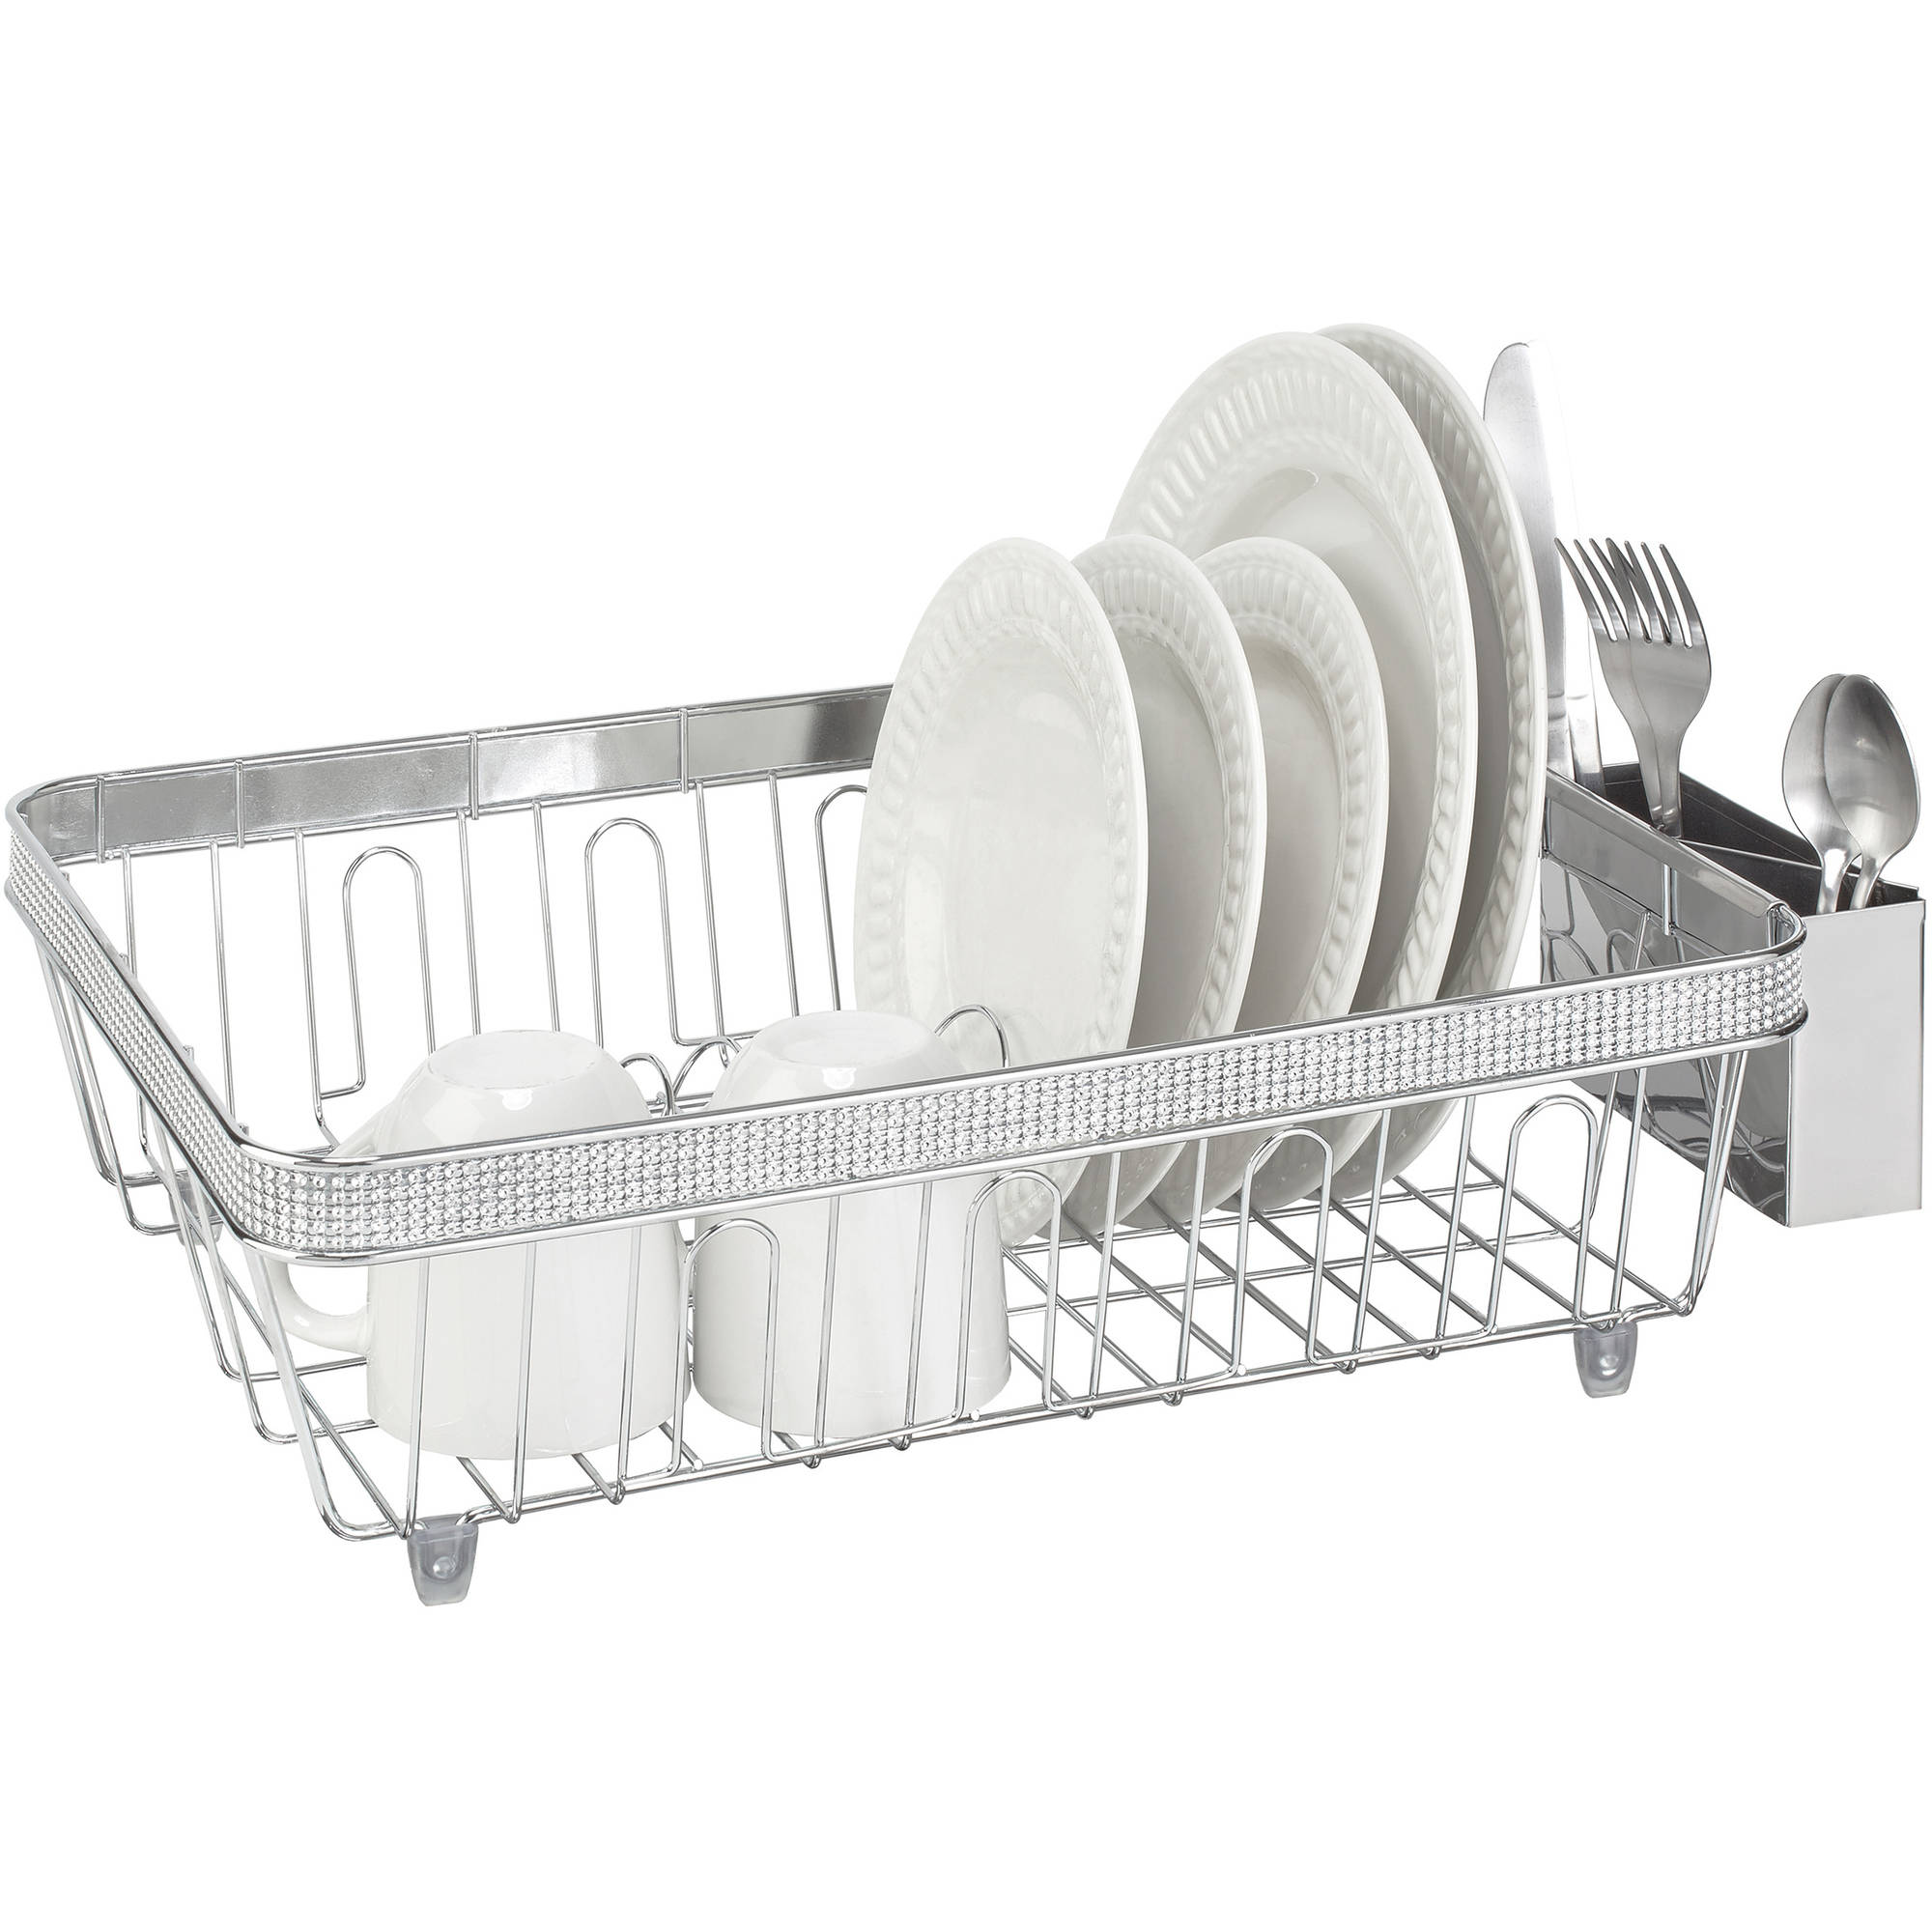 Simplify Dish Rack with Plastic Cup, Chrome Pave Diamond Design